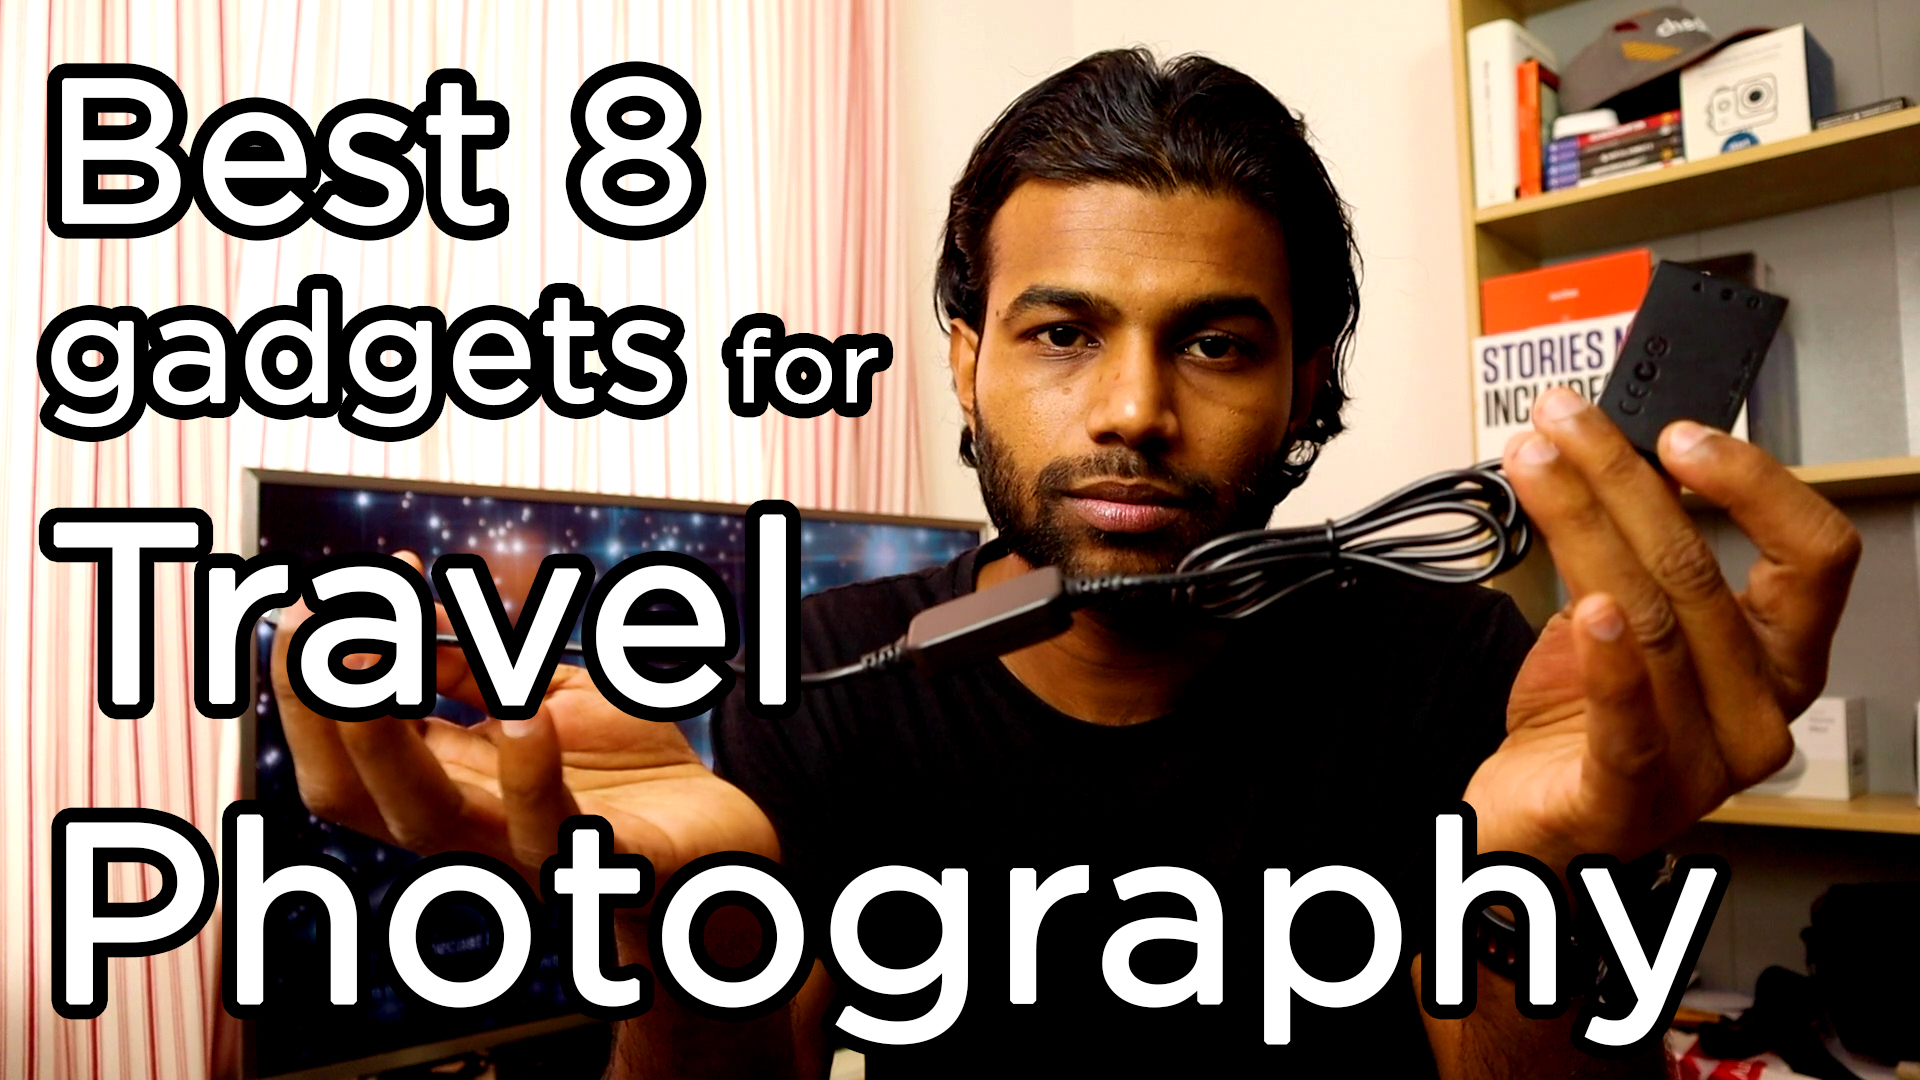 8 Best Gadgets for Travel Photography